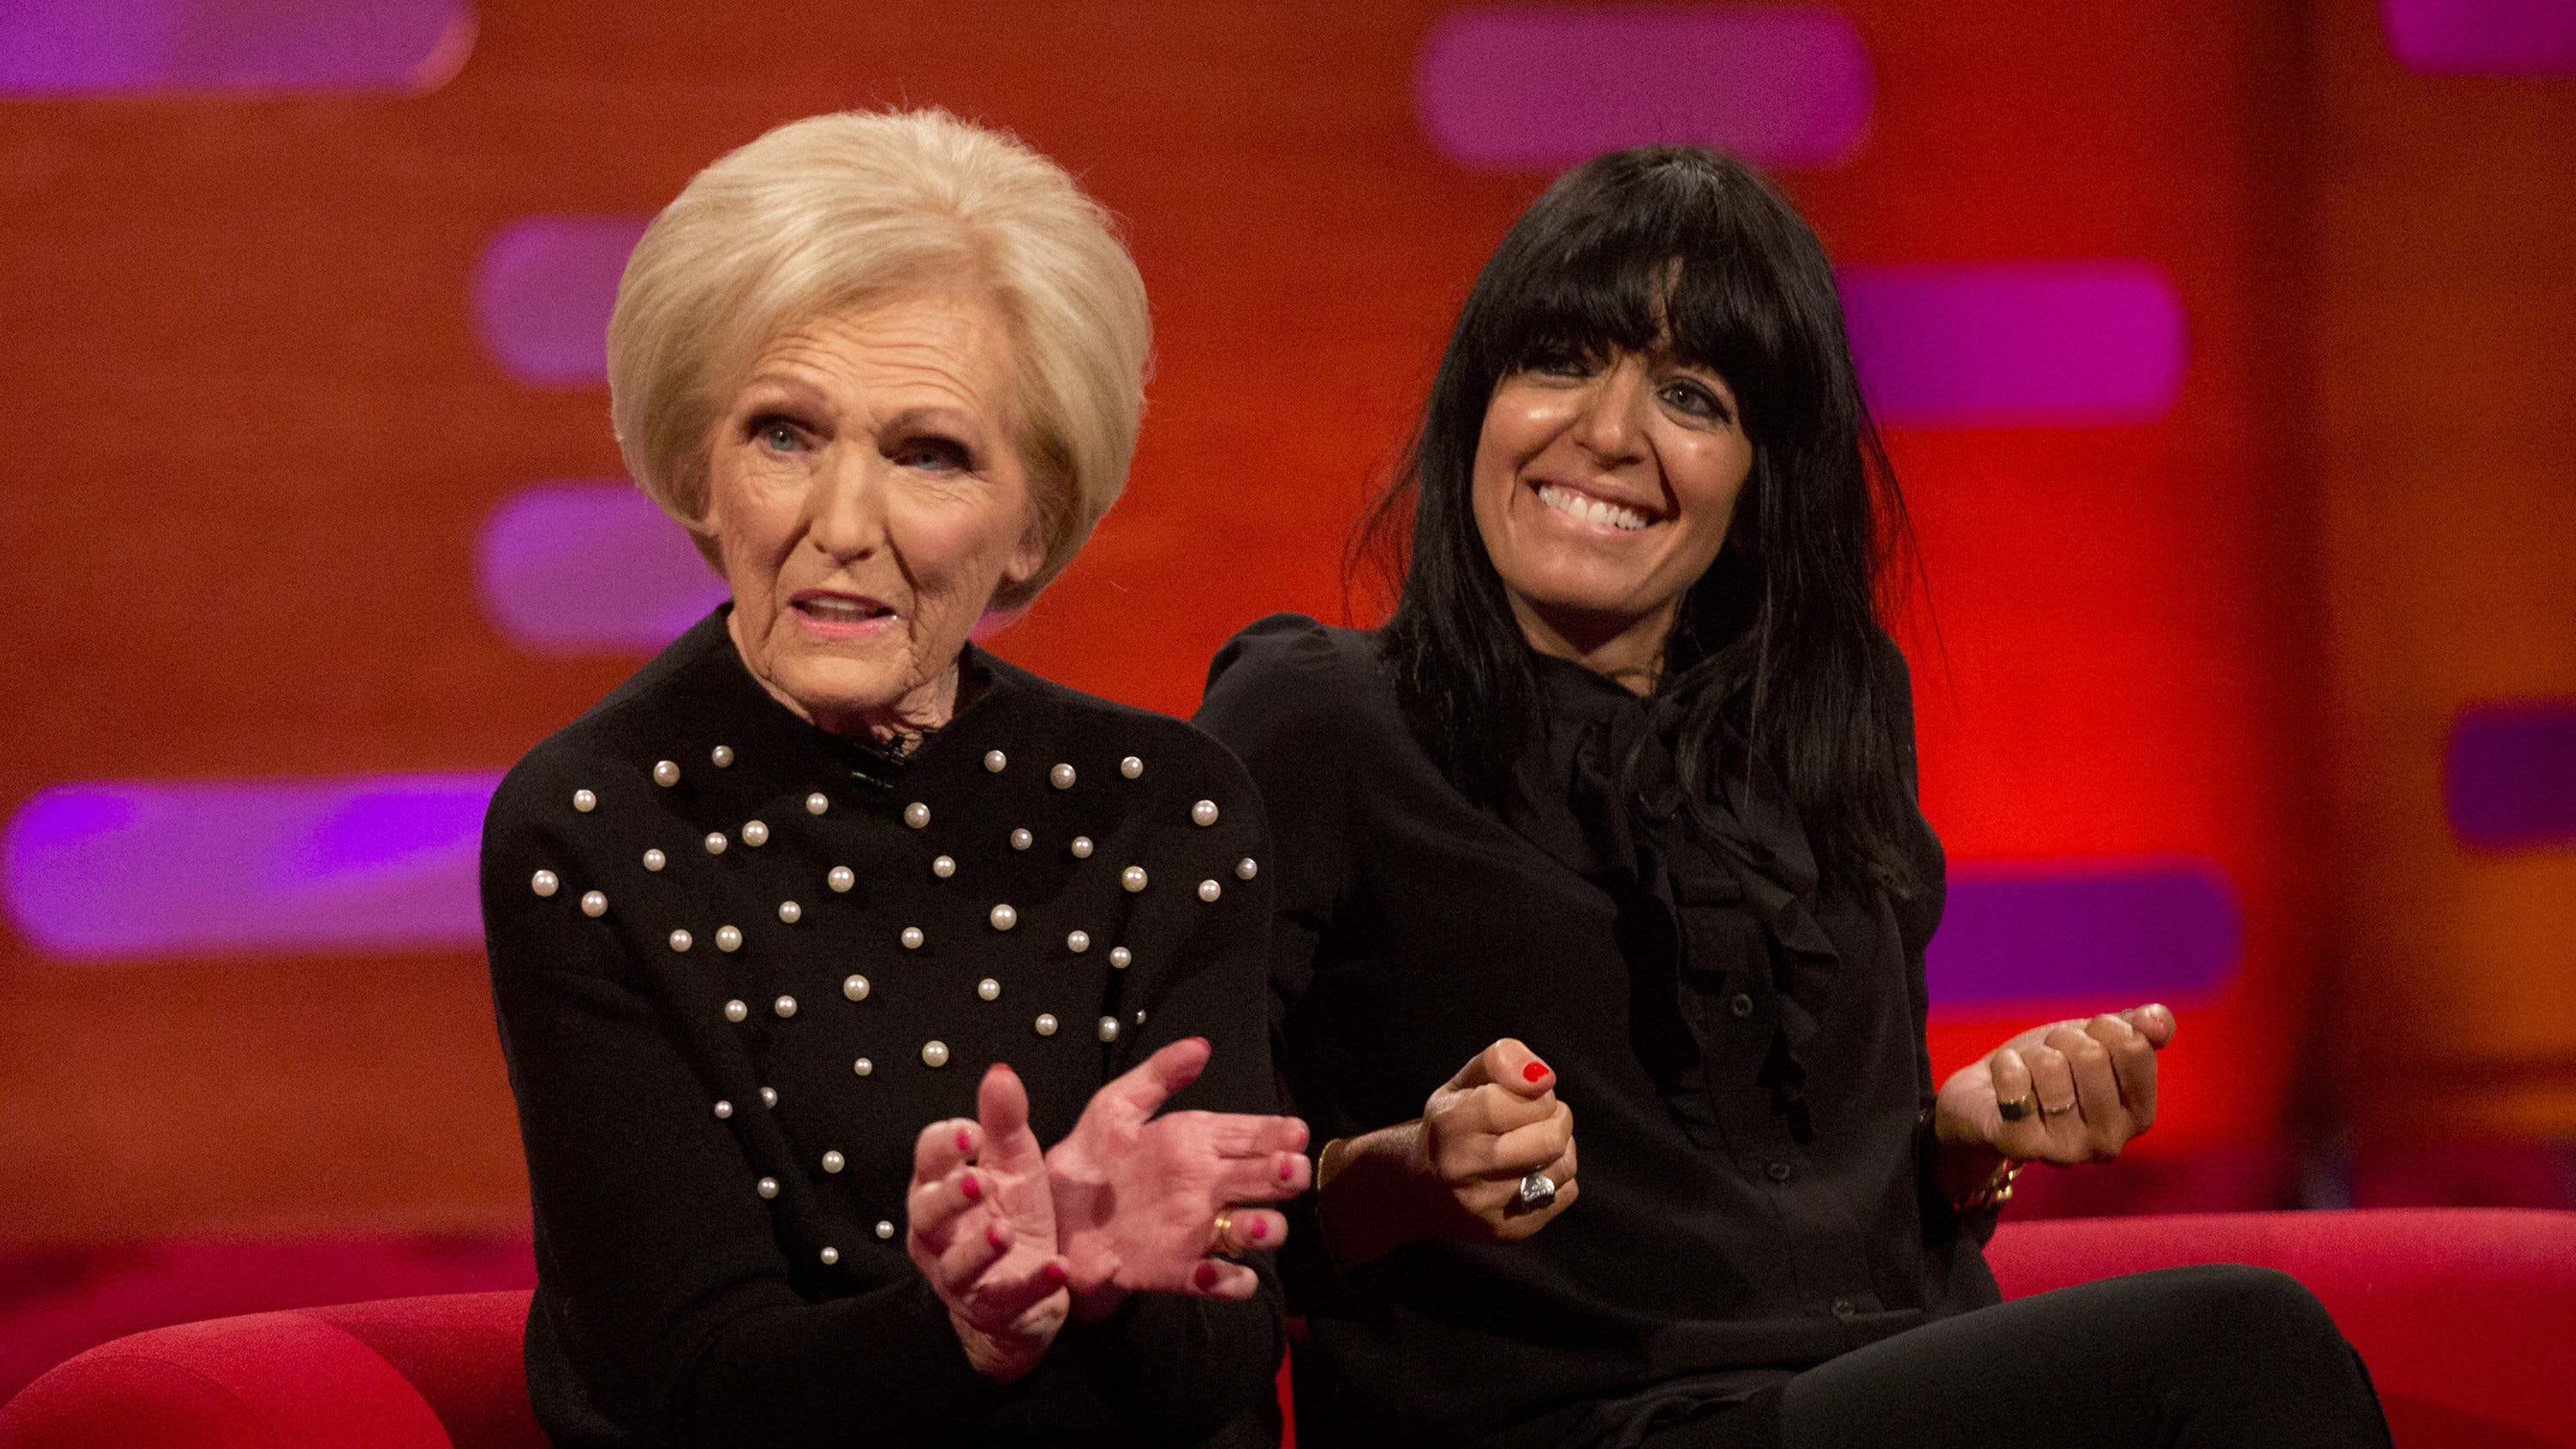 Mary Berry reveals she was arrested 25 years ago at airport